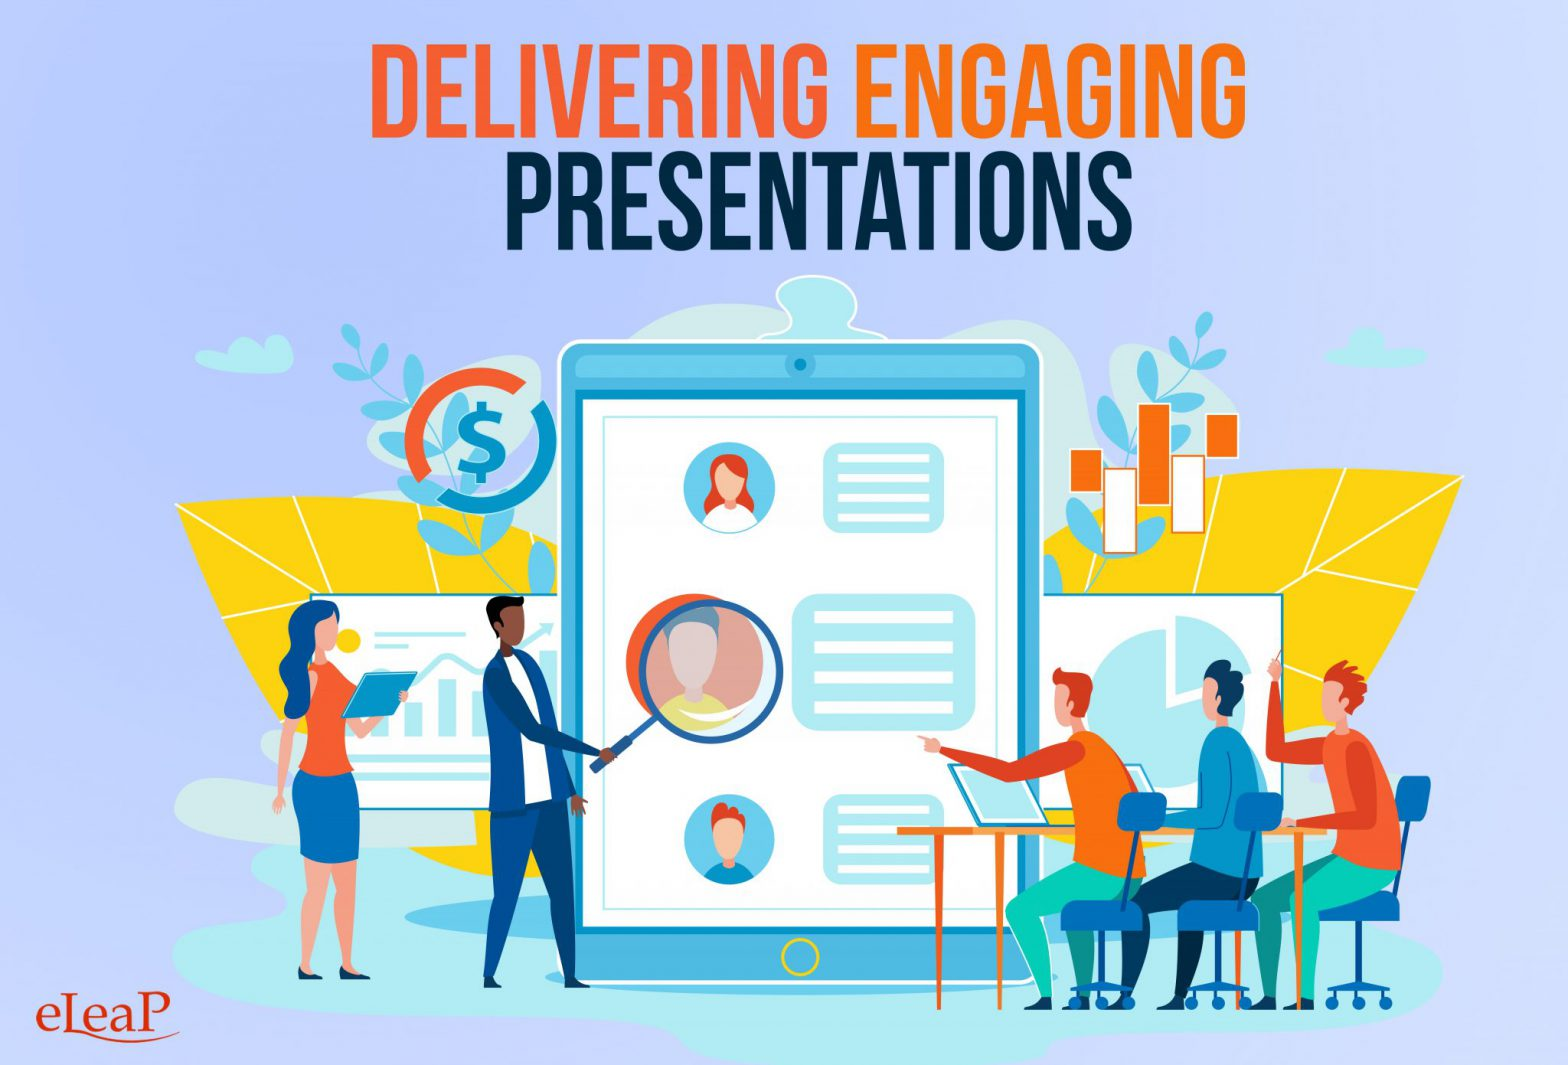 Delivering Engaging Presentations